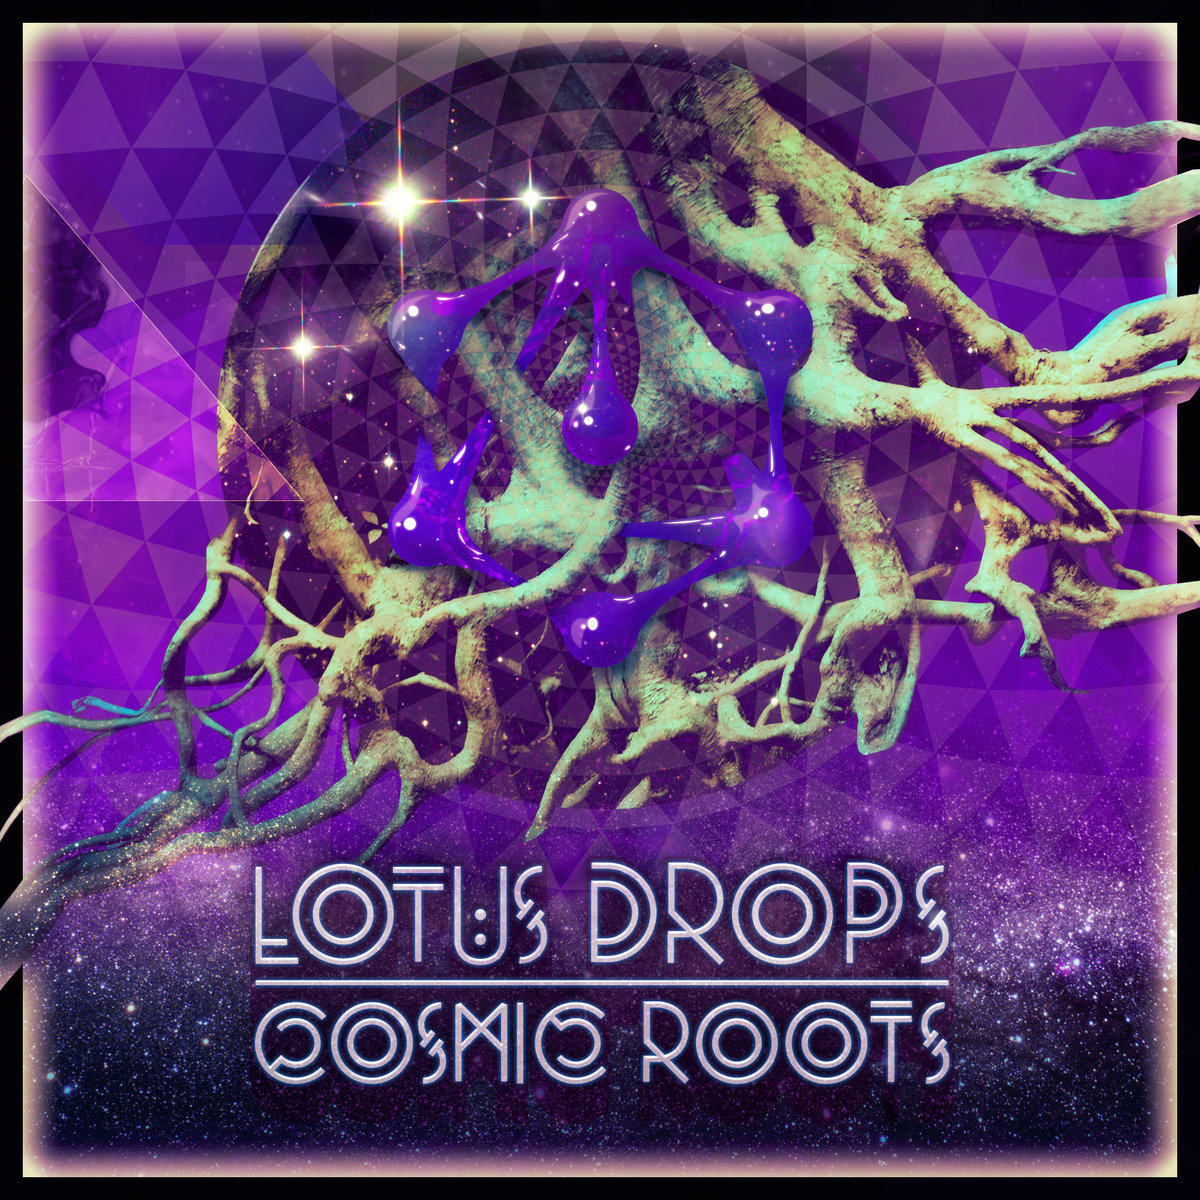 Lotus Drops - Let's Go! (Tribute To Camp ???) @ 'Cosmic Roots' album (electronic, dubstep)